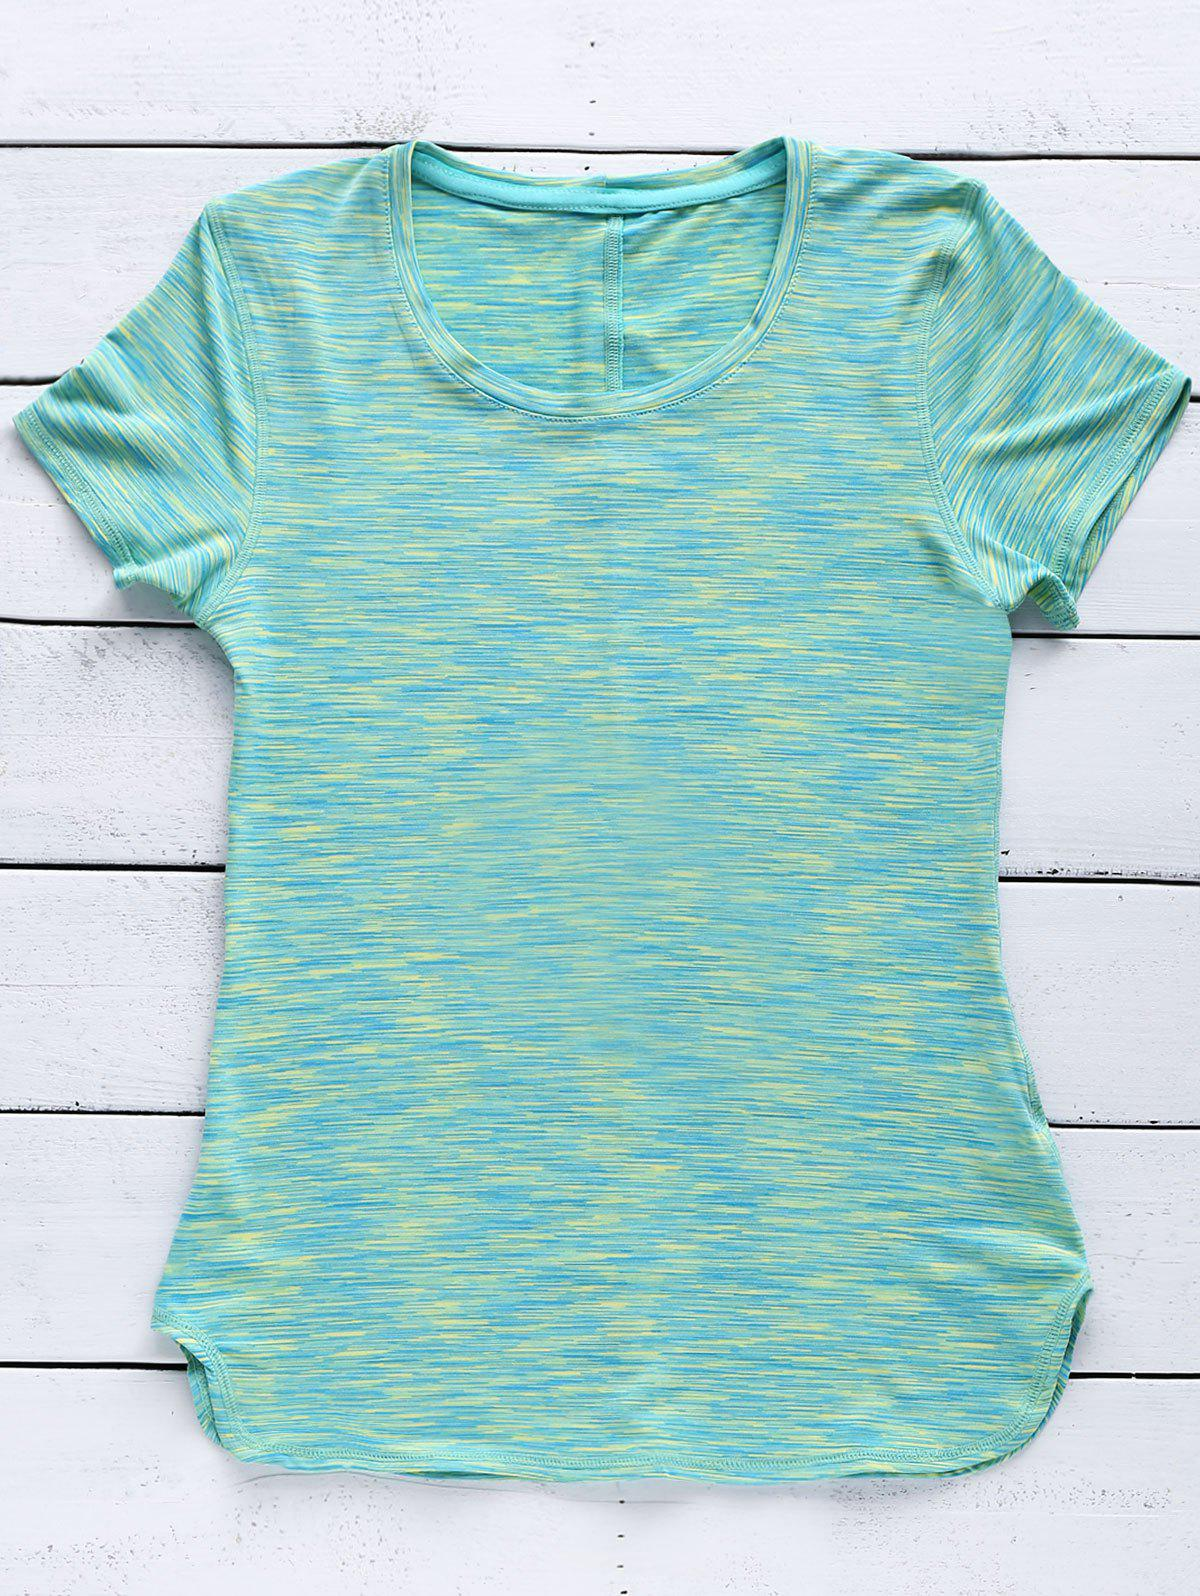 Sporty Women's Scoop Neck Space-Dyed Yoga Top - GREEN L